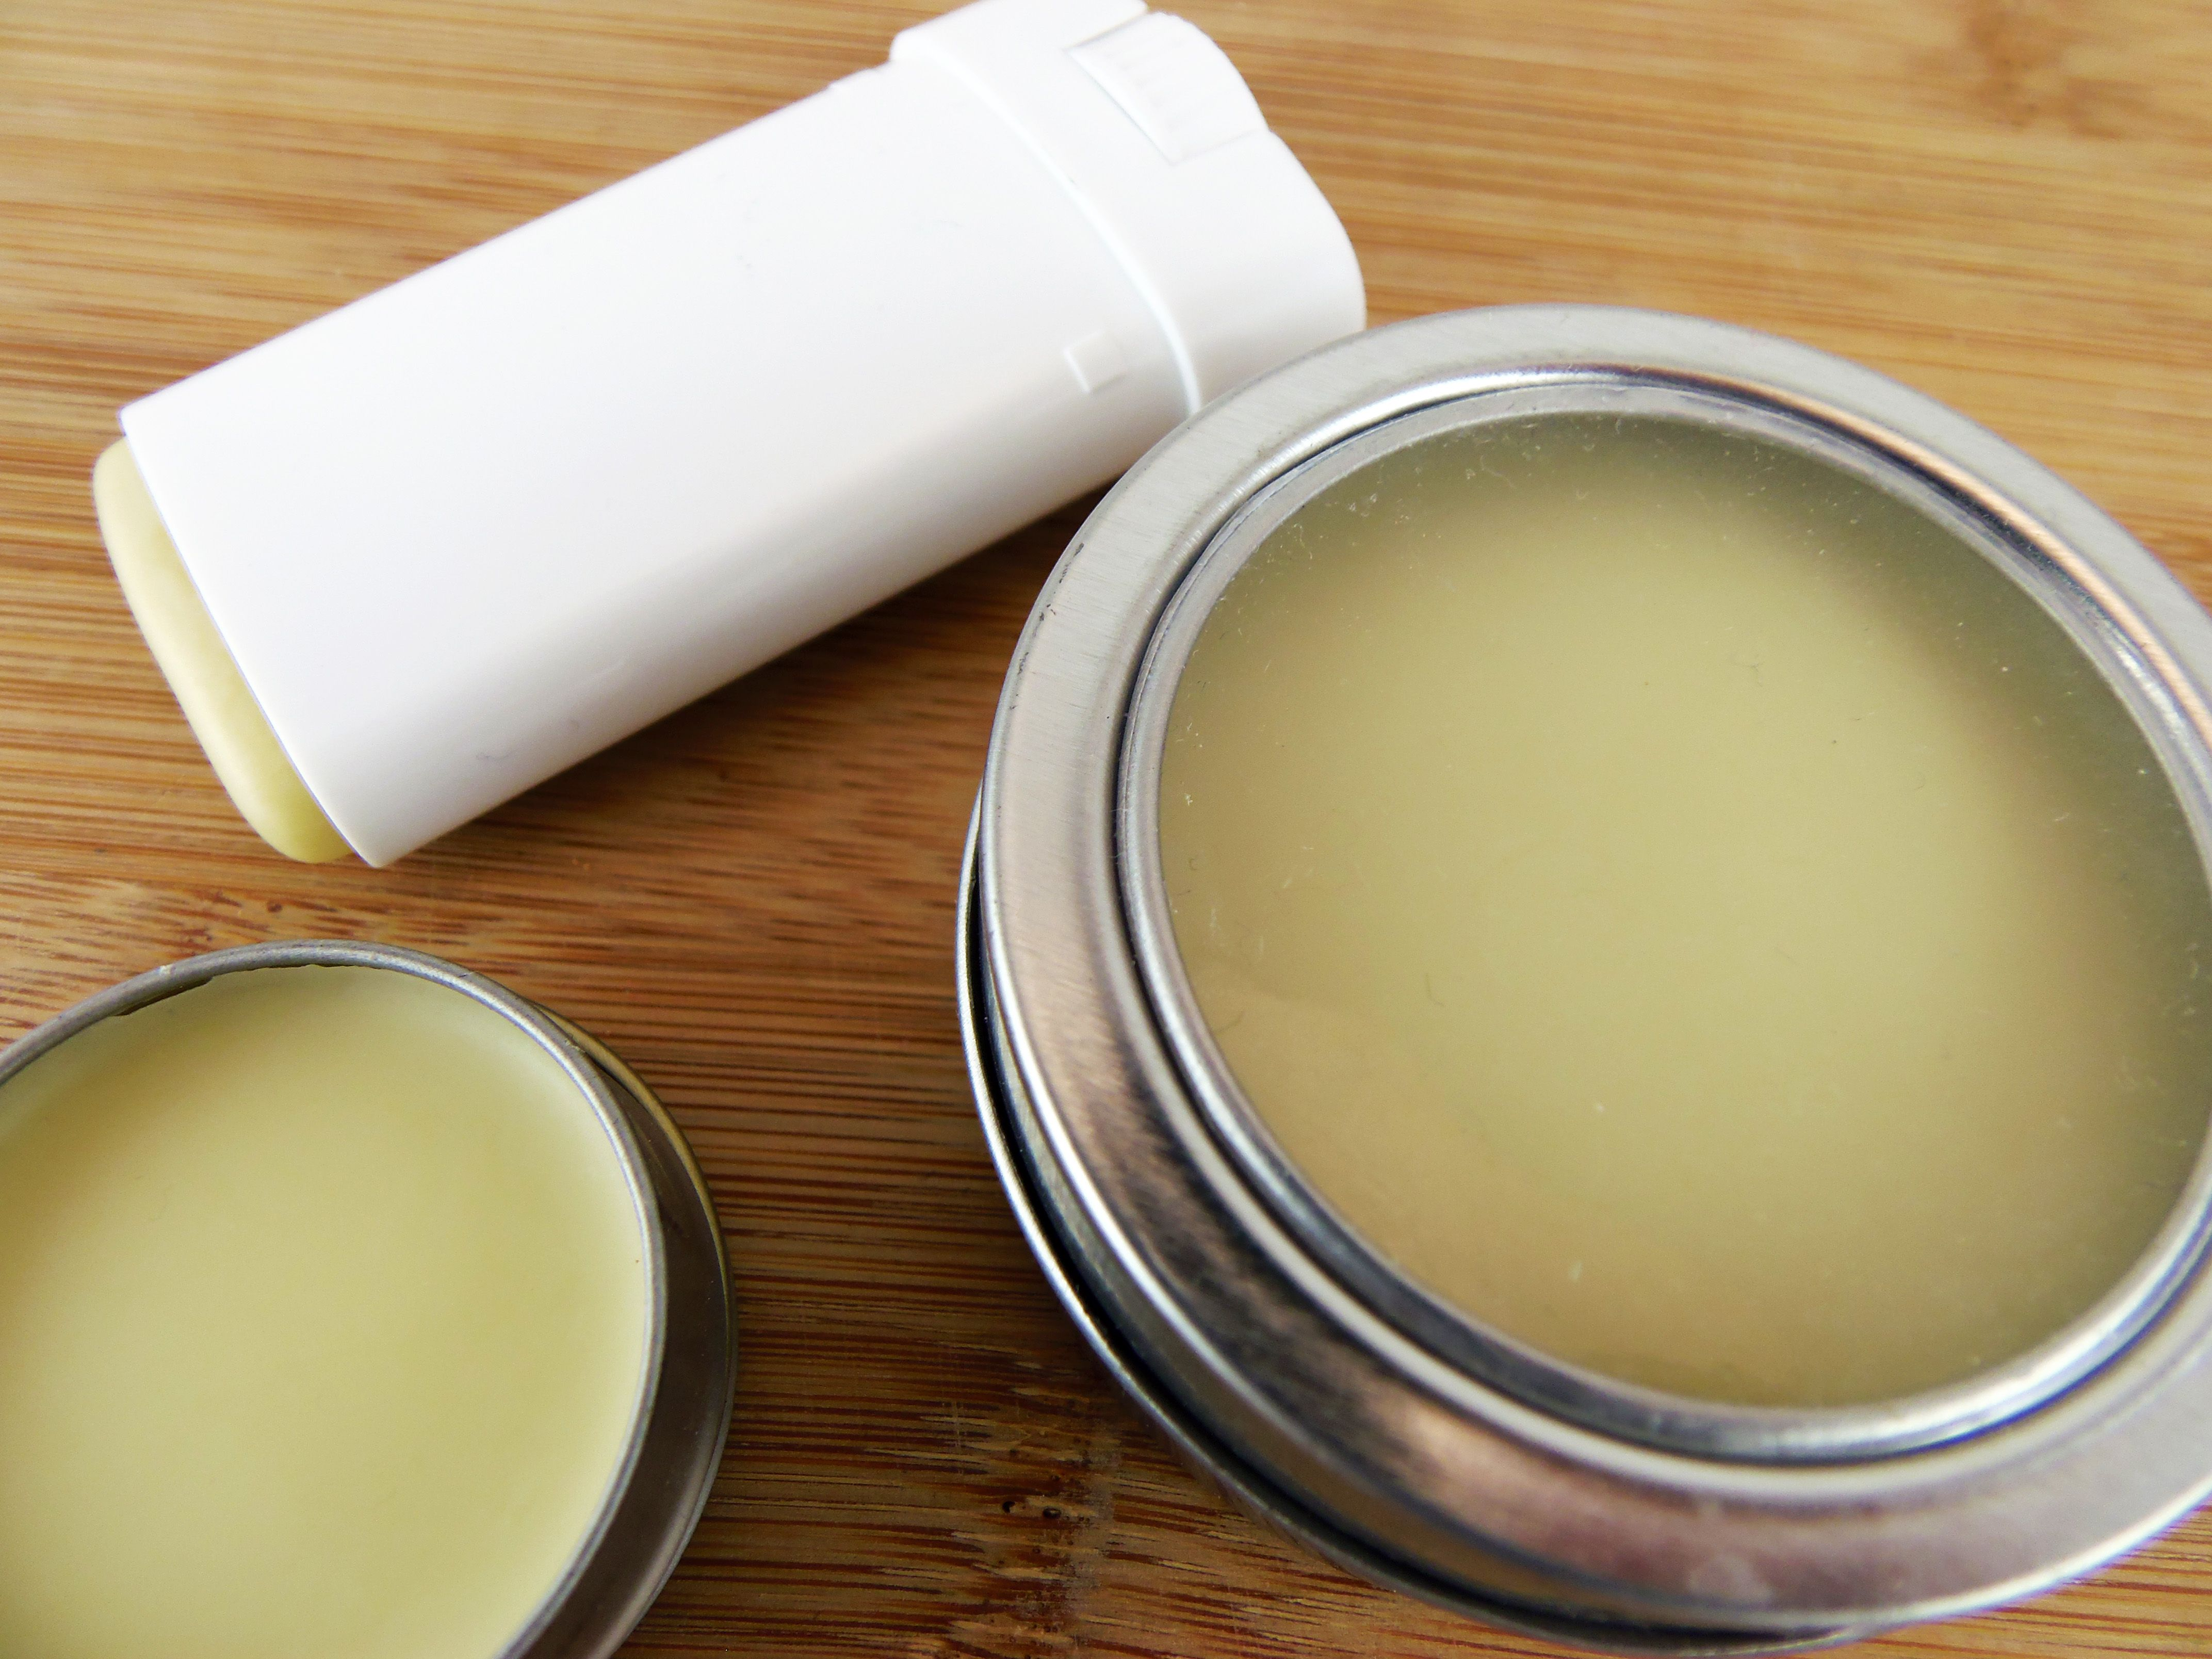 Homemade Balms and Salves